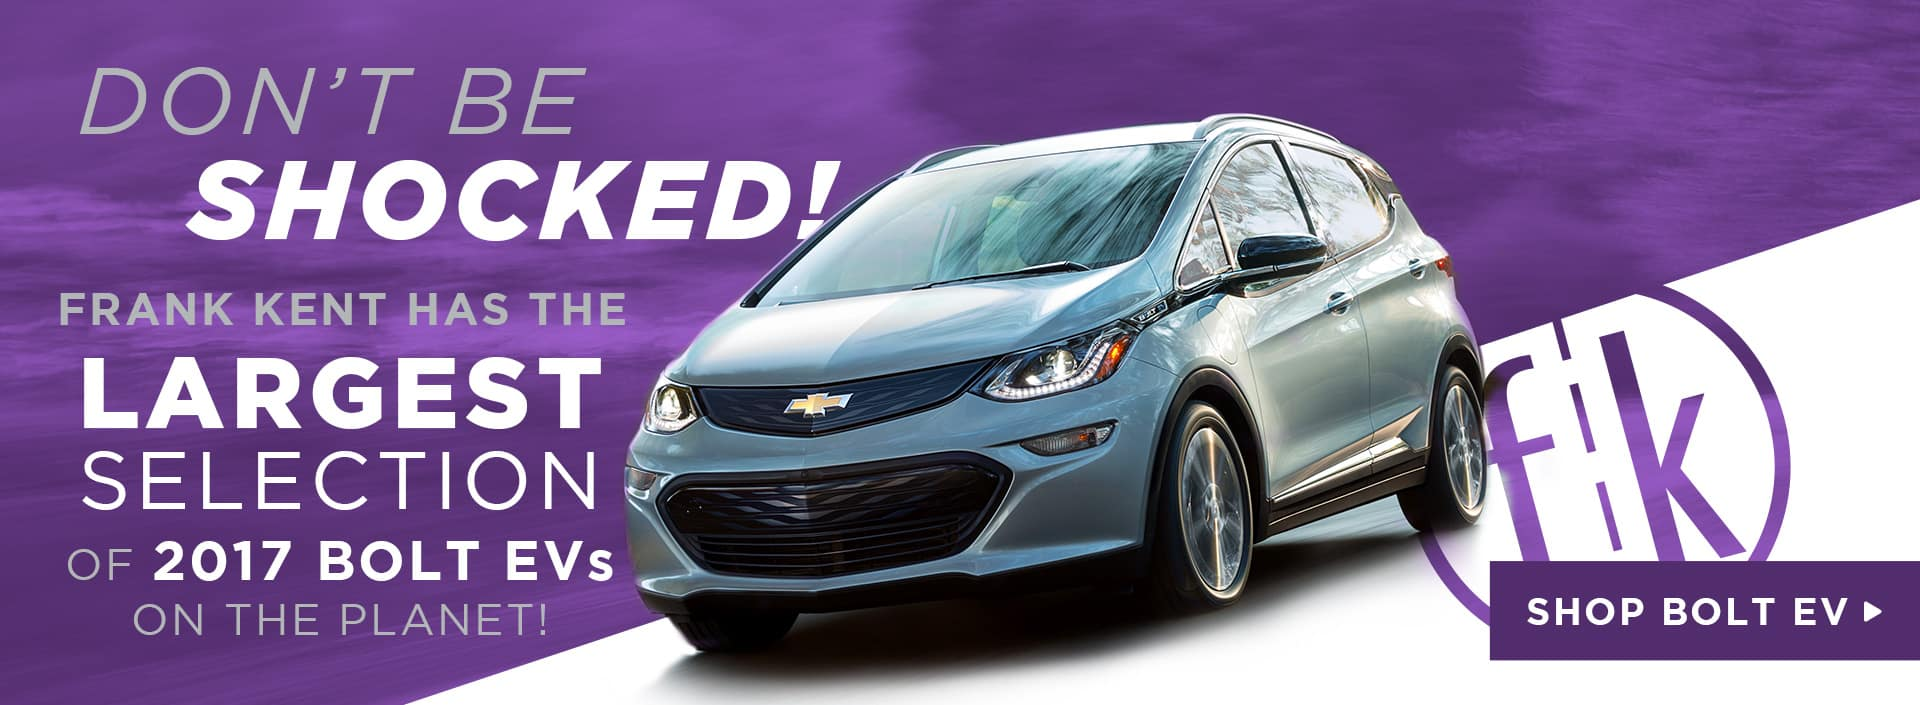 Frank Kent Has The Largest Bolt EV Inventory On The Planet!